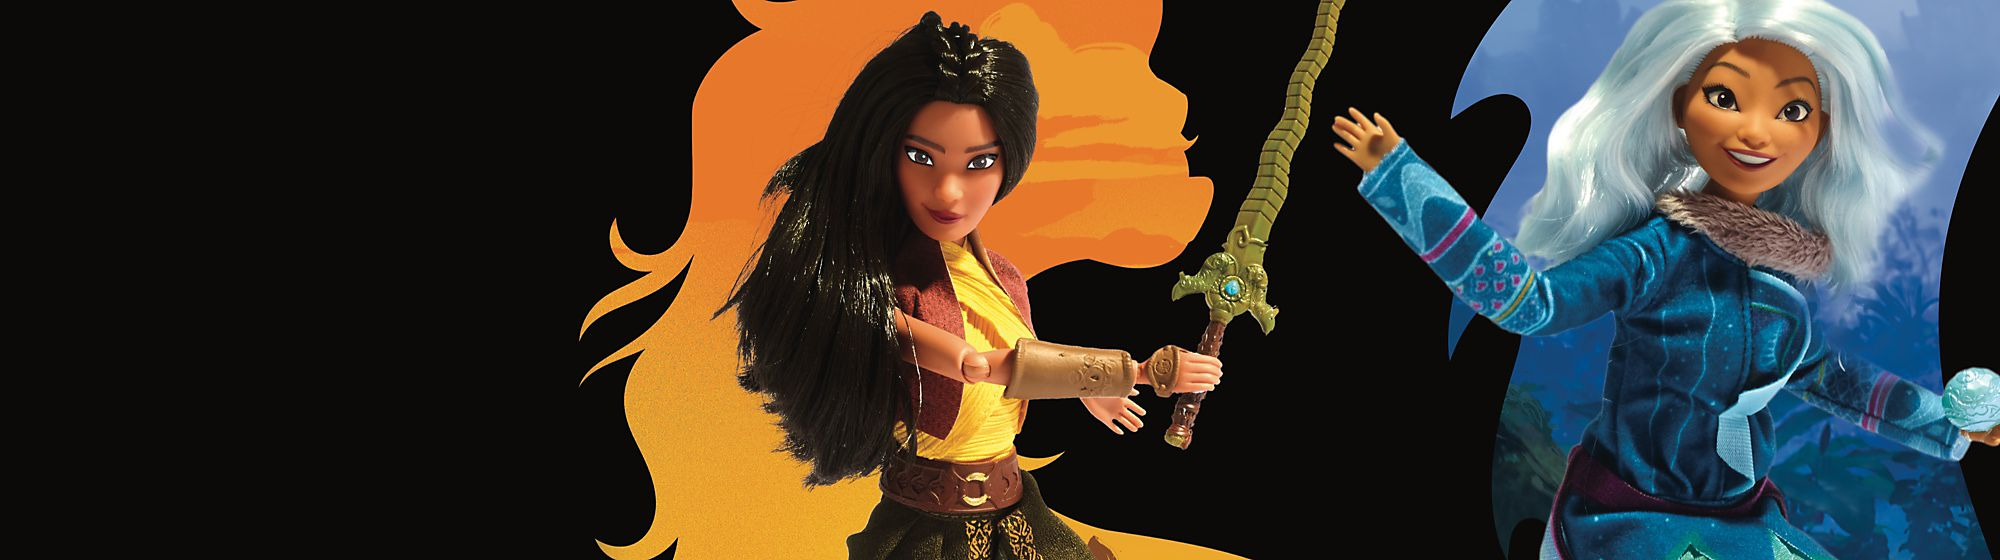 Raya and The Last Dragon Delve into the magical world of Raya and the Last Dragon with our toys,  clothing, costumes and more.  See Disney's Raya and The Last Dragon from March 5 in cinemas where available and on  Disney+ with Premier Access.   Additional fees required.